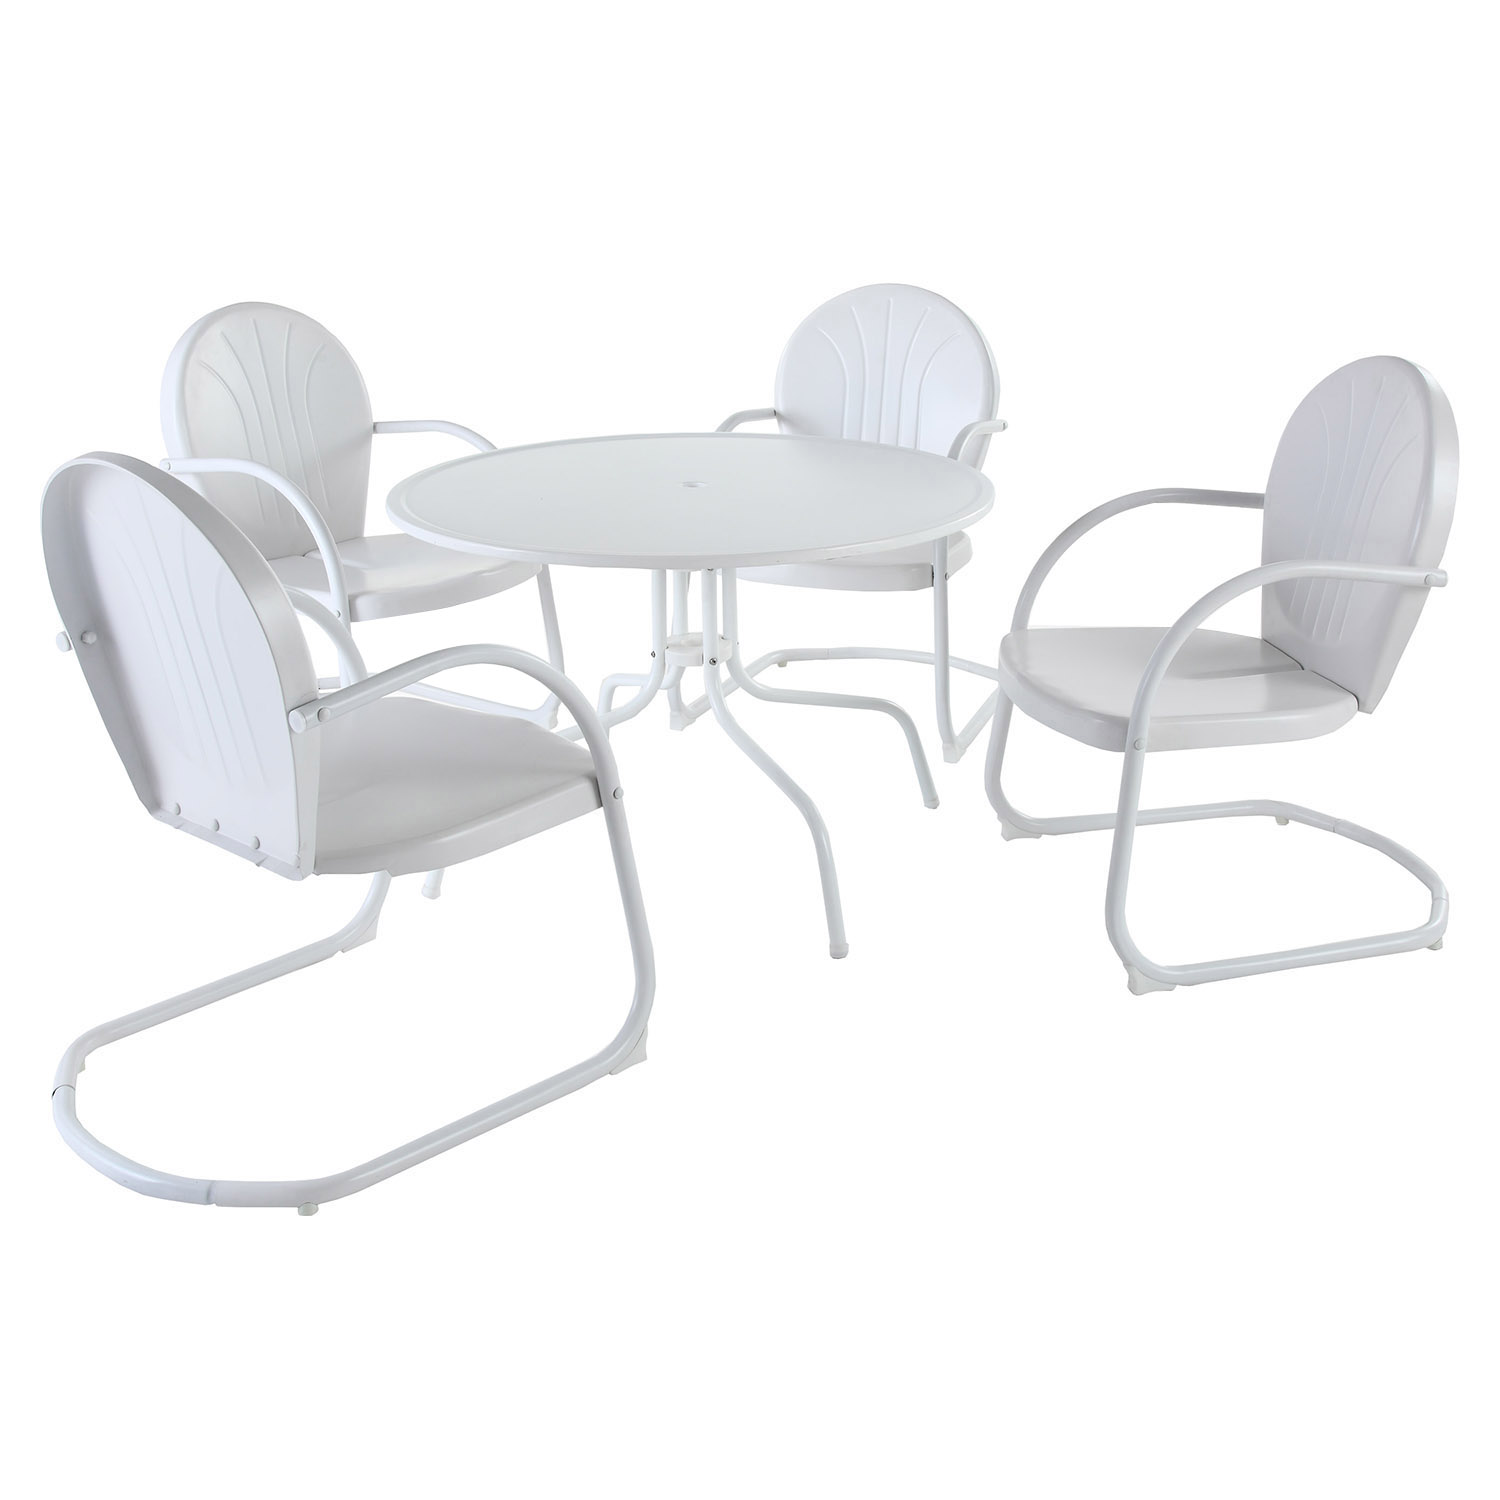 "Griffith Metal 40"" 5-Piece Outdoor Dining Set - White Chairs, White Table"